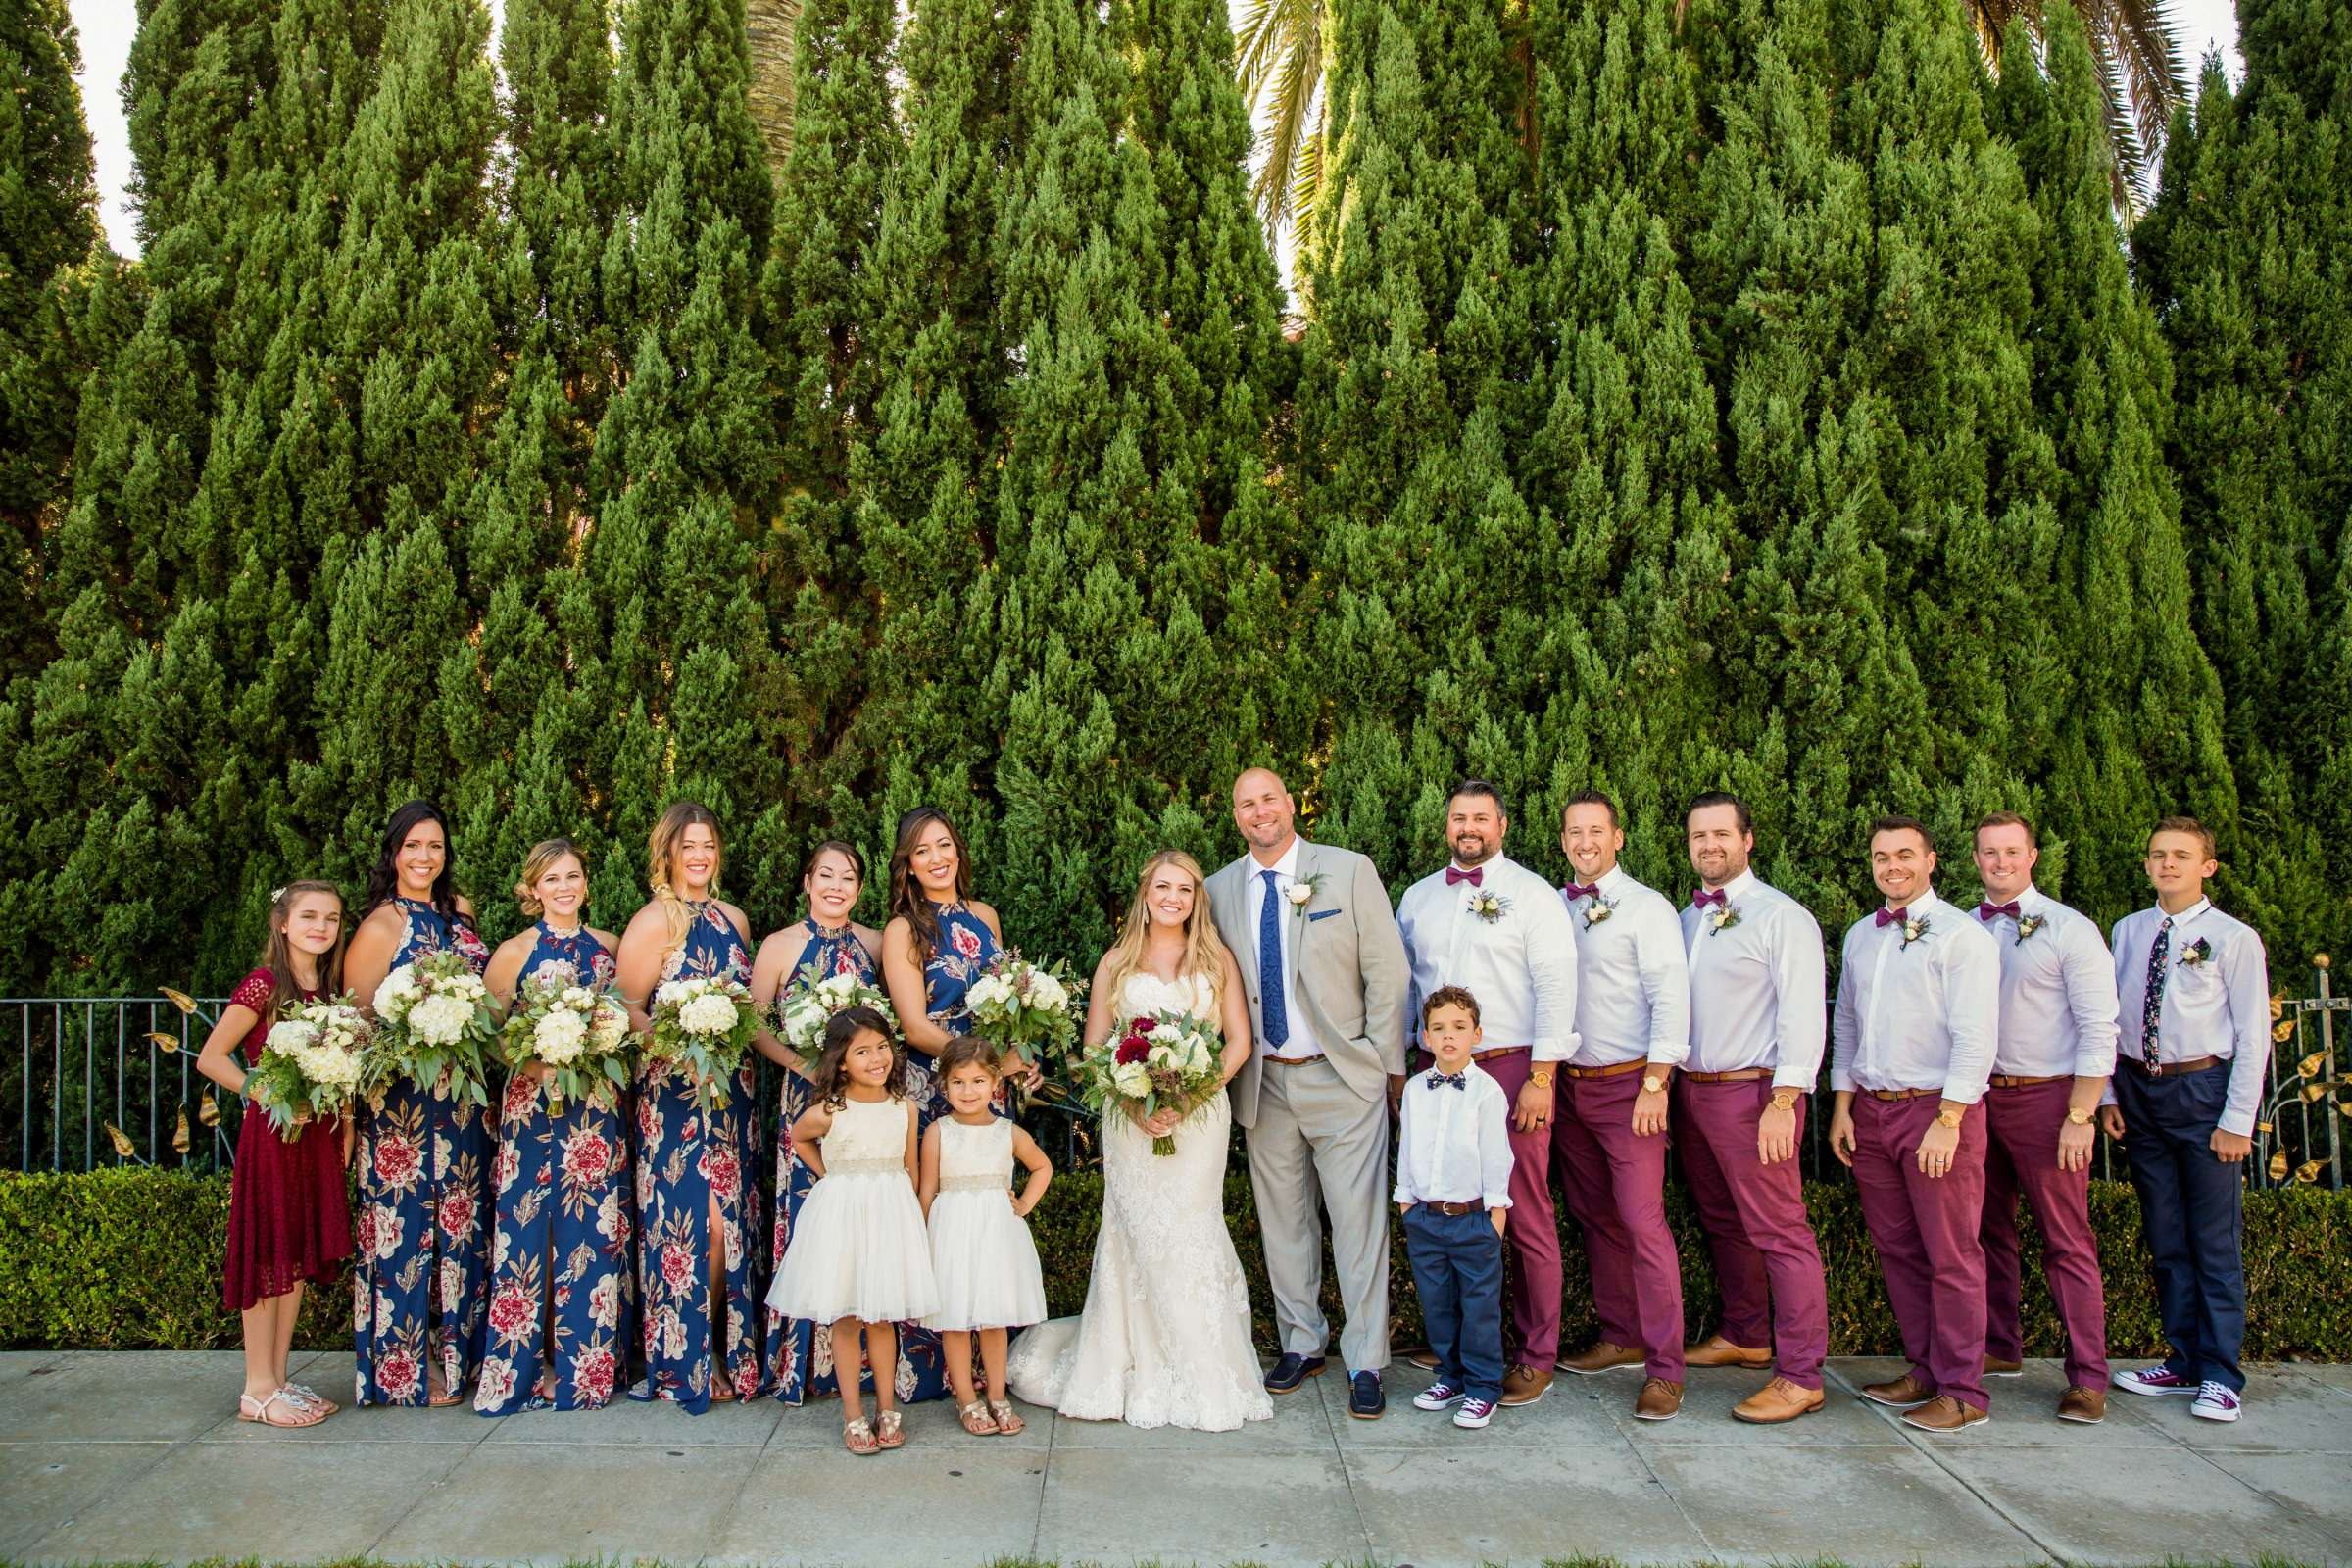 Cuvier Club Wedding coordinated by The Abbey Catering, Chelsey and Eric Wedding Photo #20 by True Photography